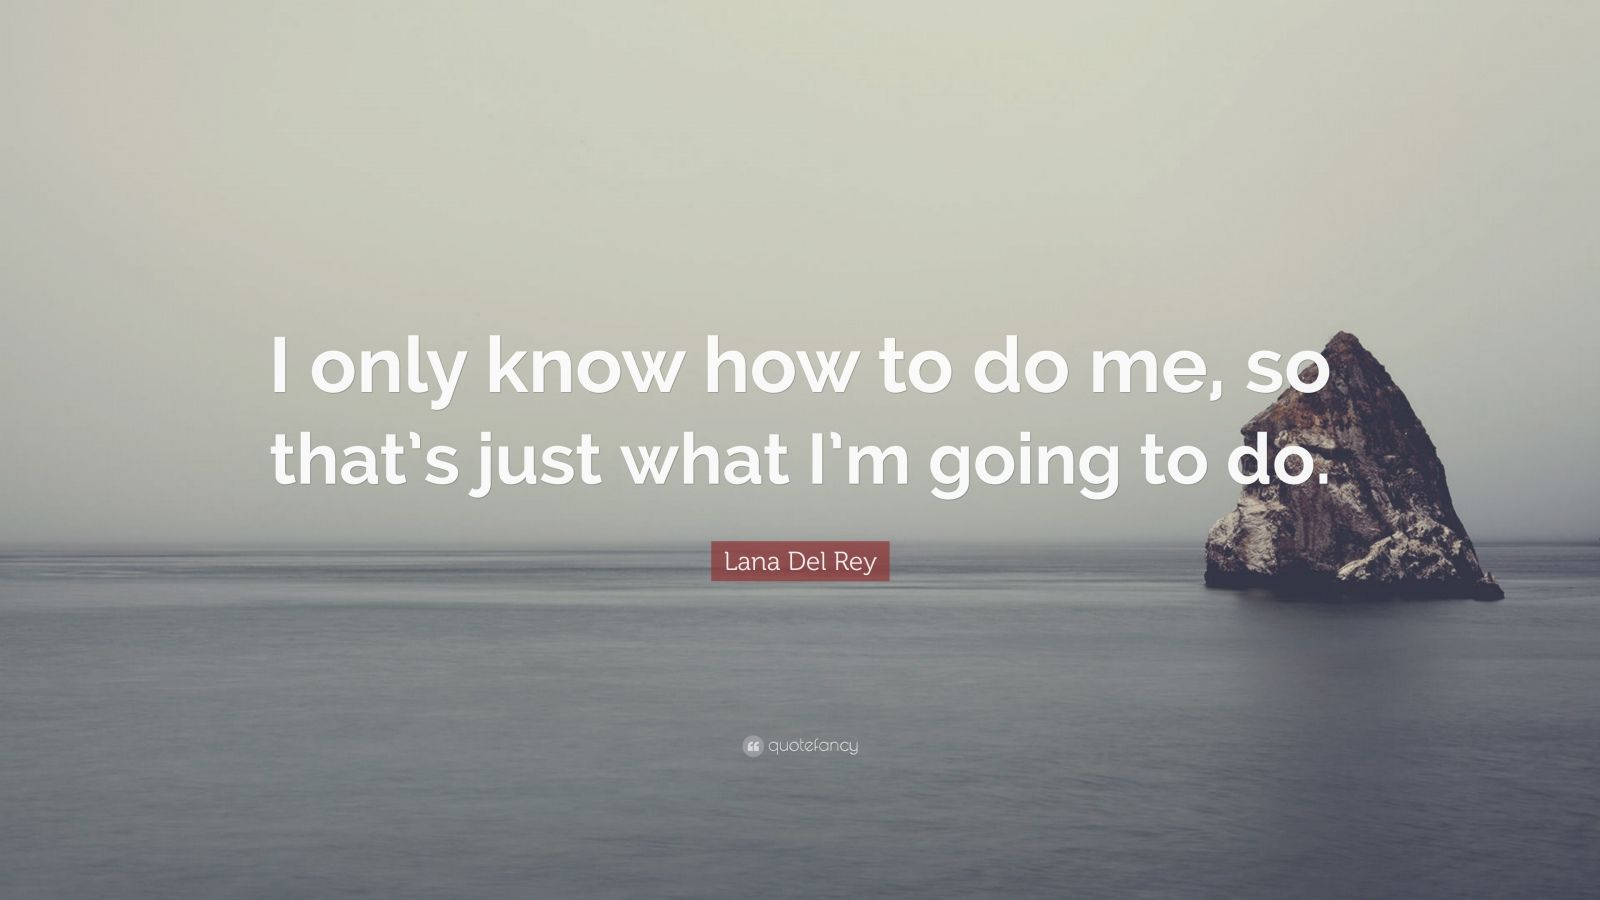 """Lana Del Rey Quote: """"I only know how to do me, so that's just what I'm going to do."""""""